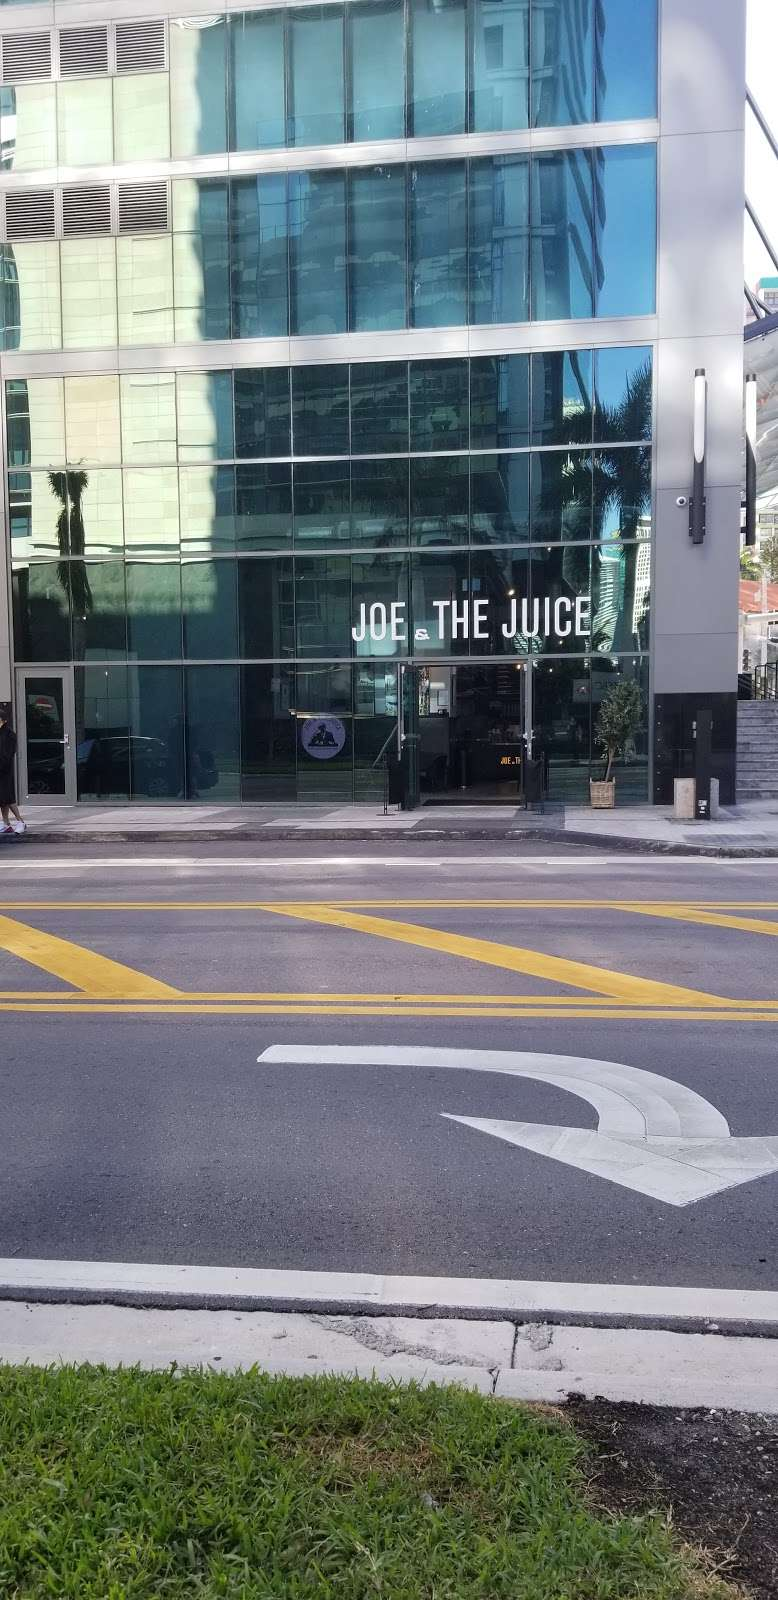 JOE & THE JUICE - meal takeaway  | Photo 7 of 9 | Address: 1451 Brickell Ave, Miami, FL 33131, USA